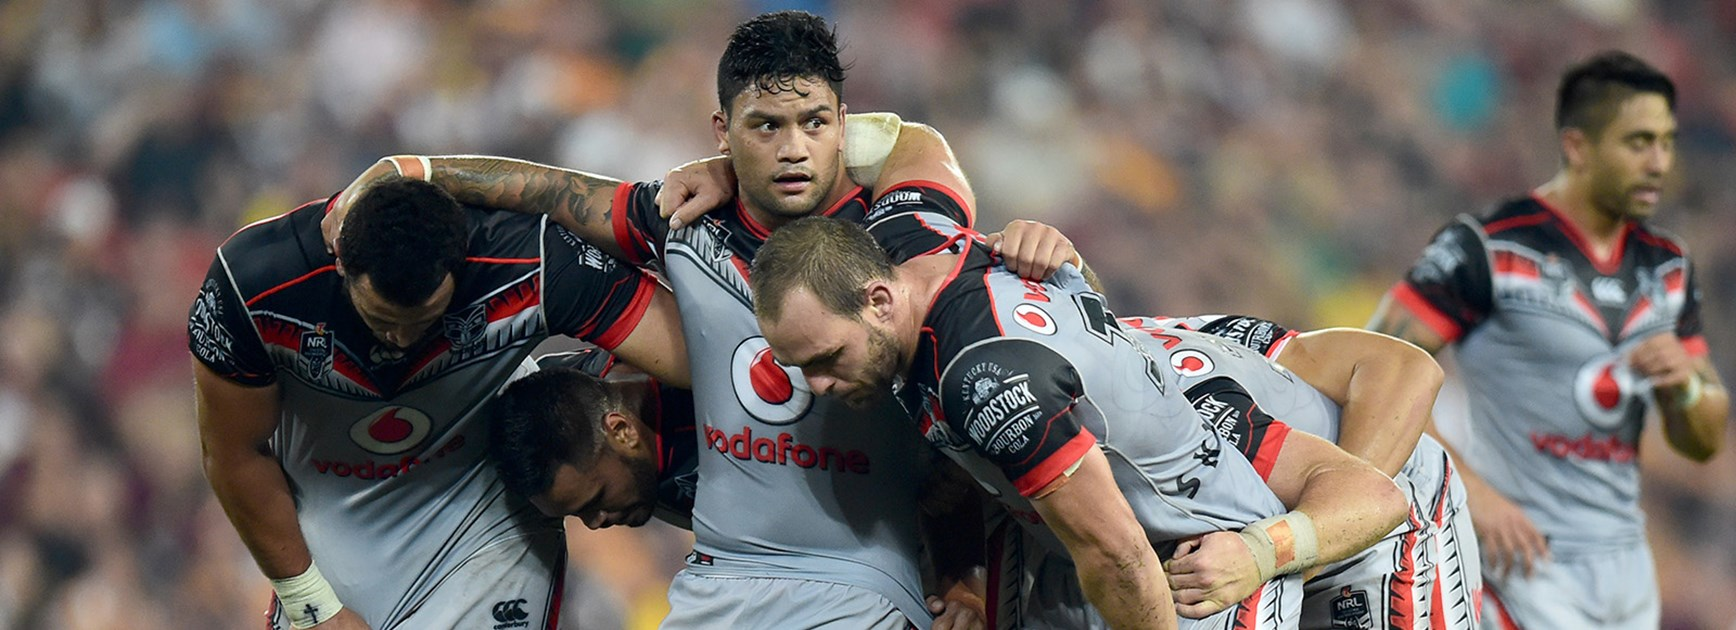 The Warriors ran out of gas against the Broncos after being reduced to 15 players through injury.